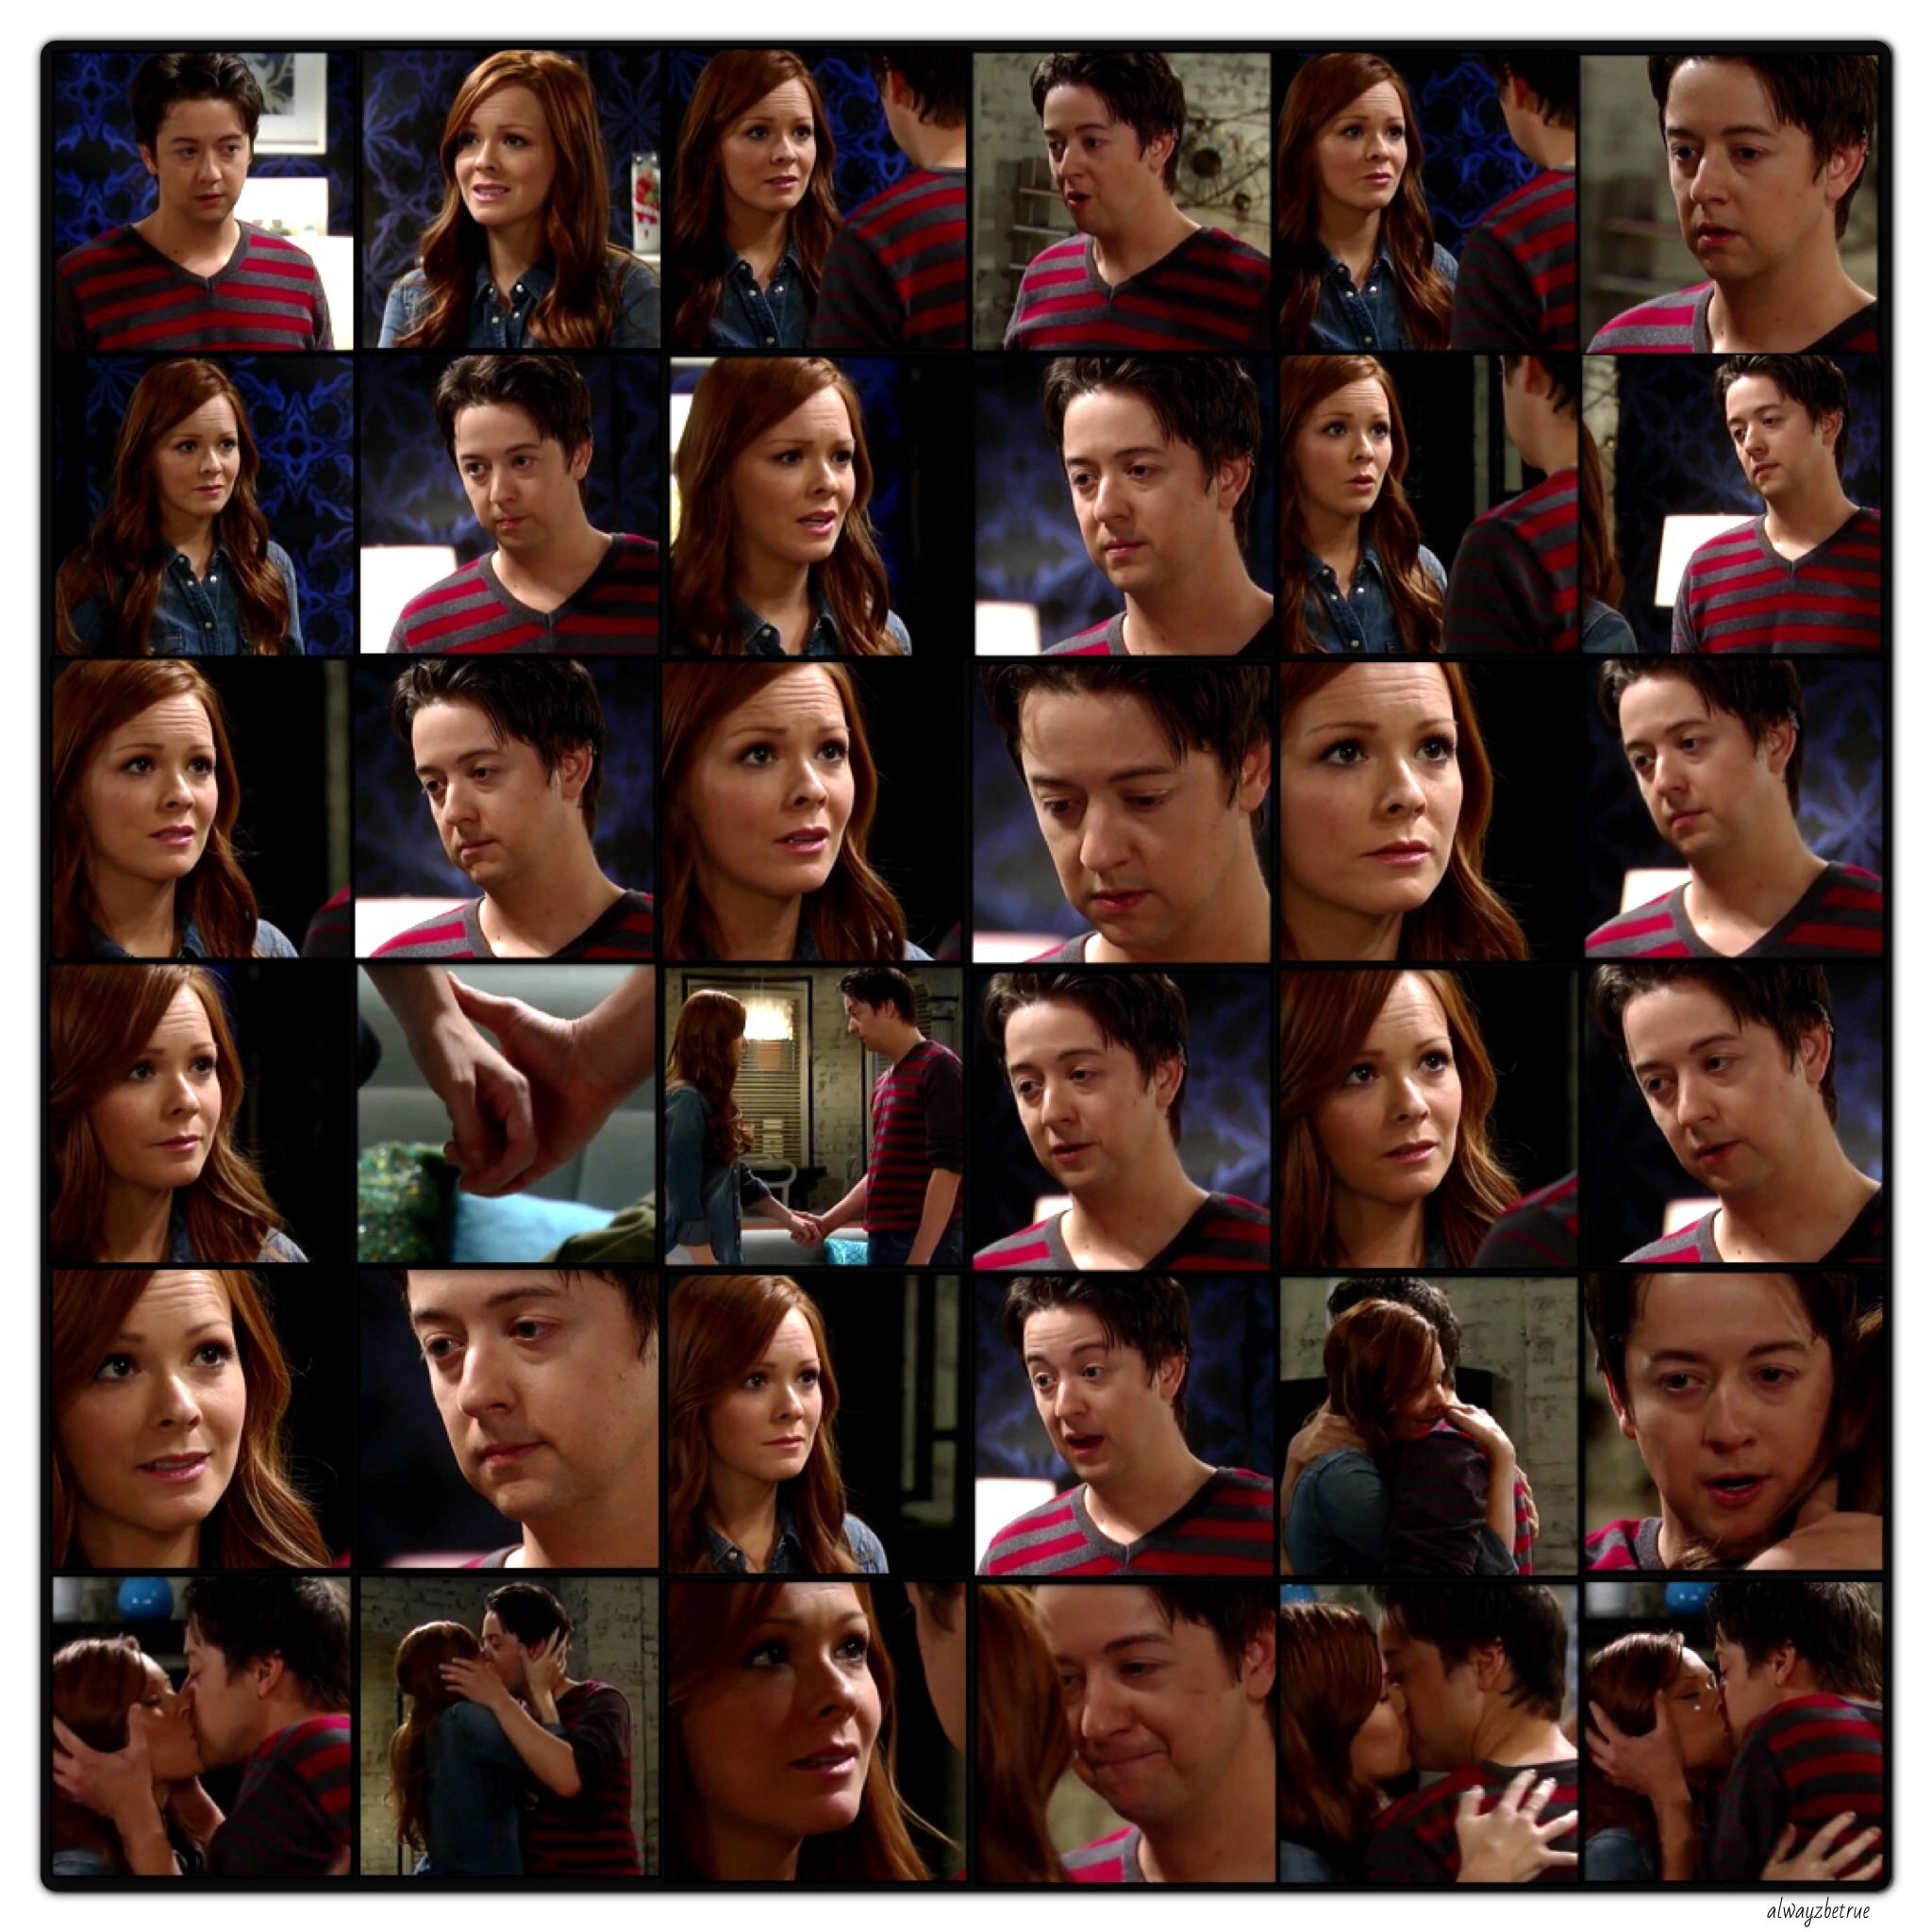 #GH #GH50 *Fans if used please keep/give credit (alwayzbetrue)* #SpinEllie #Spellie Spinelli & Ellie